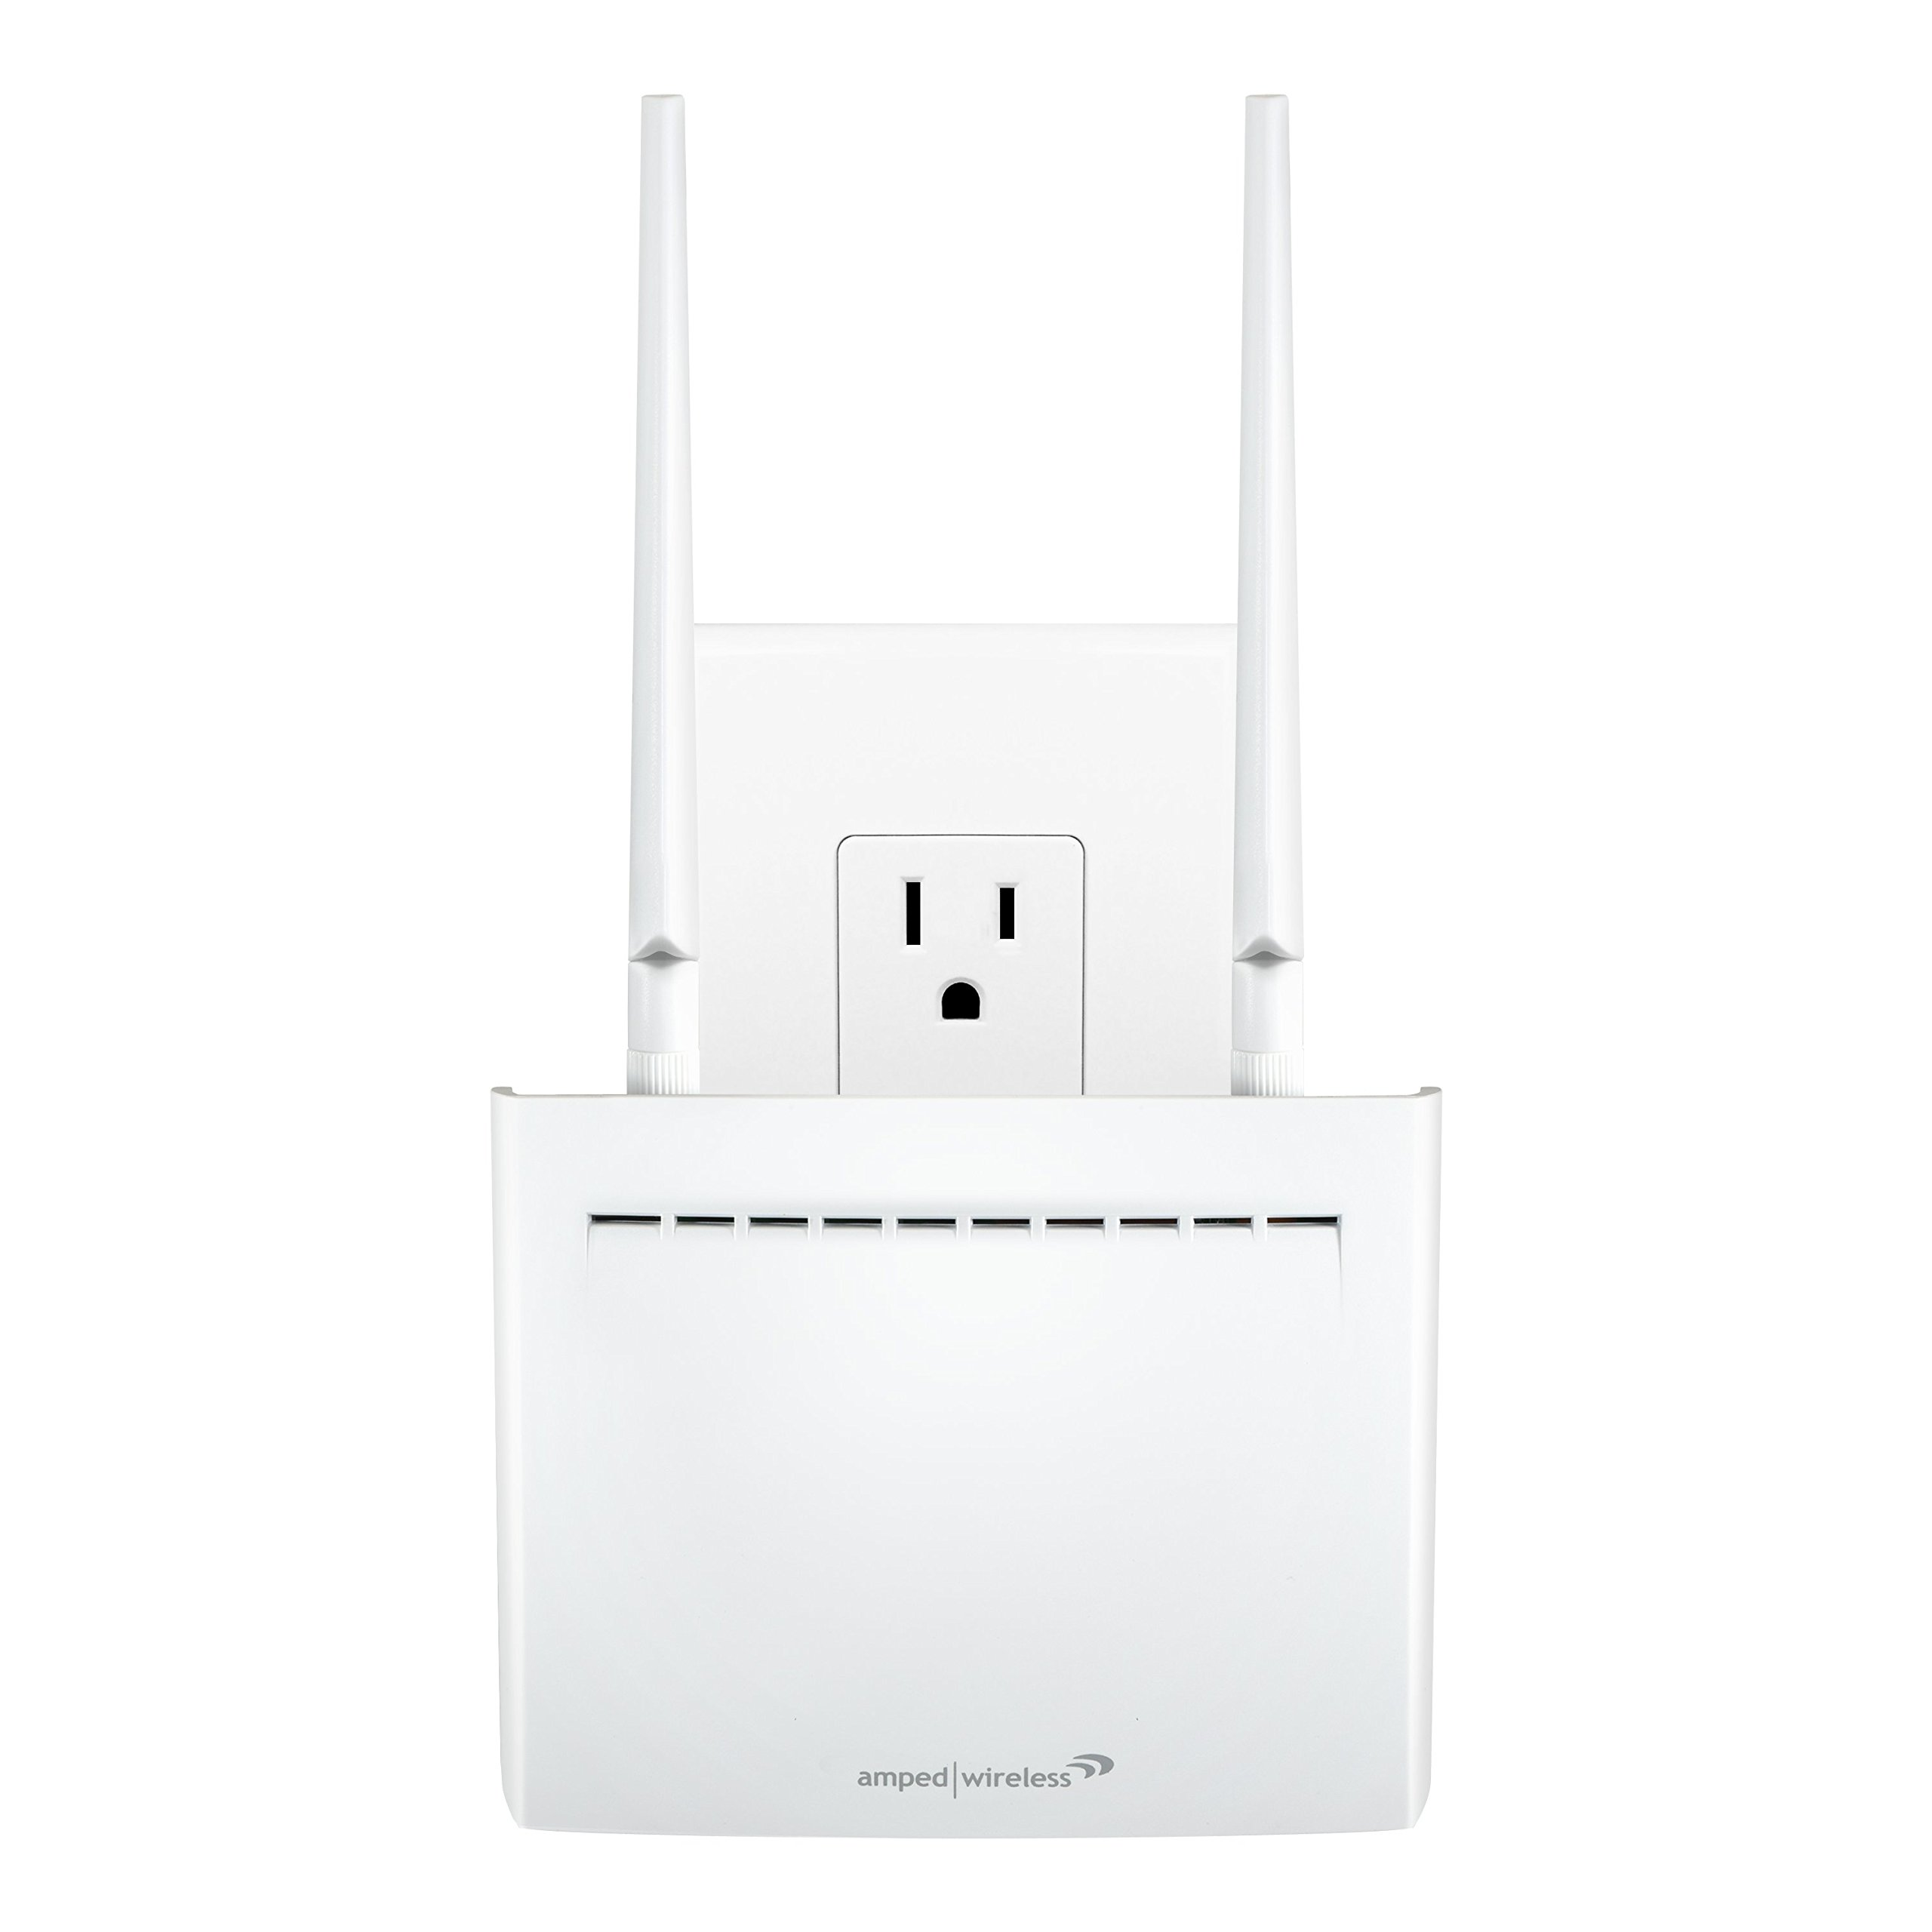 Amped Wireless High Power AC2600 Plug-In Wi-Fi Range Extender with MU-MIMO (REC44M) by Amped Wireless (Image #2)